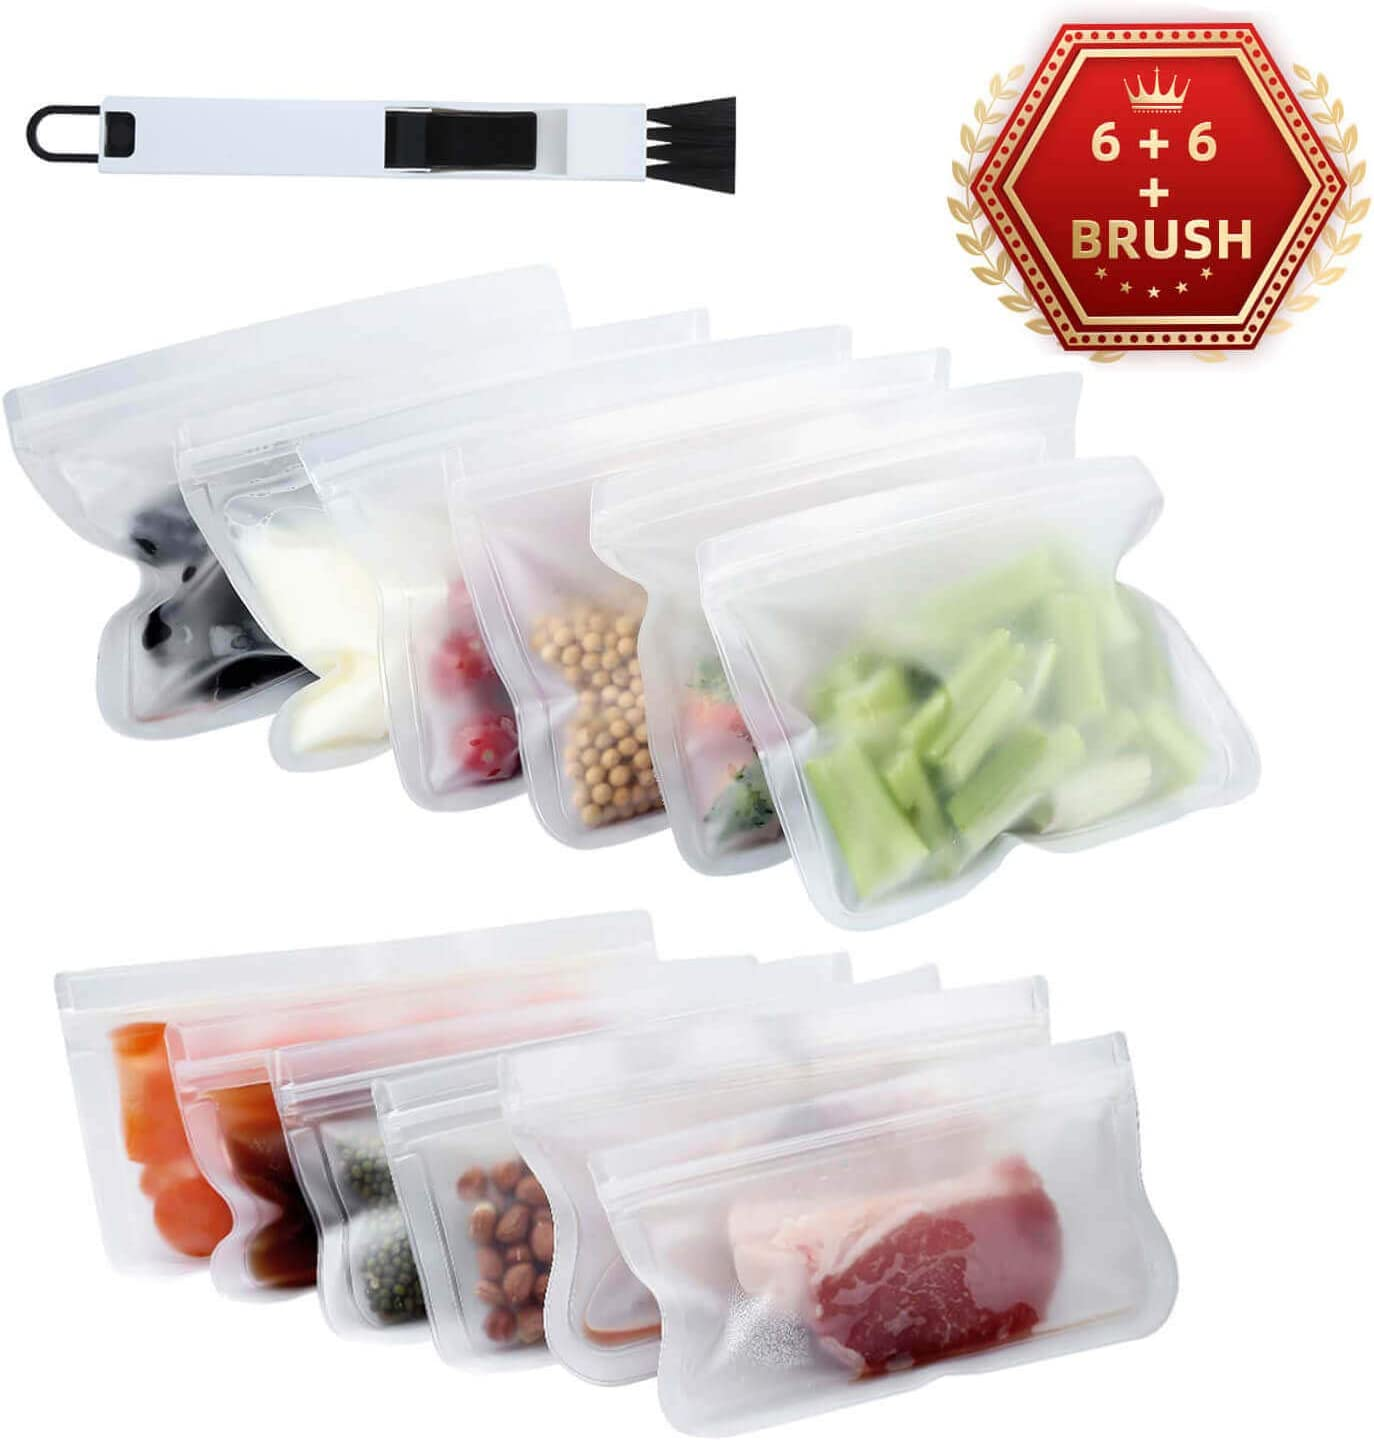 12 PackFood Storage Bags, Reusable Sandwich Snack Bagsfor Kids, Leakproof Extra Thick, Enough to Hold Nuts, Vegetables, Fruits, Meat, Soup and Dry Food Items 2 Size (8.46x 7.1/8.46 x 4.7 Inch x 6)